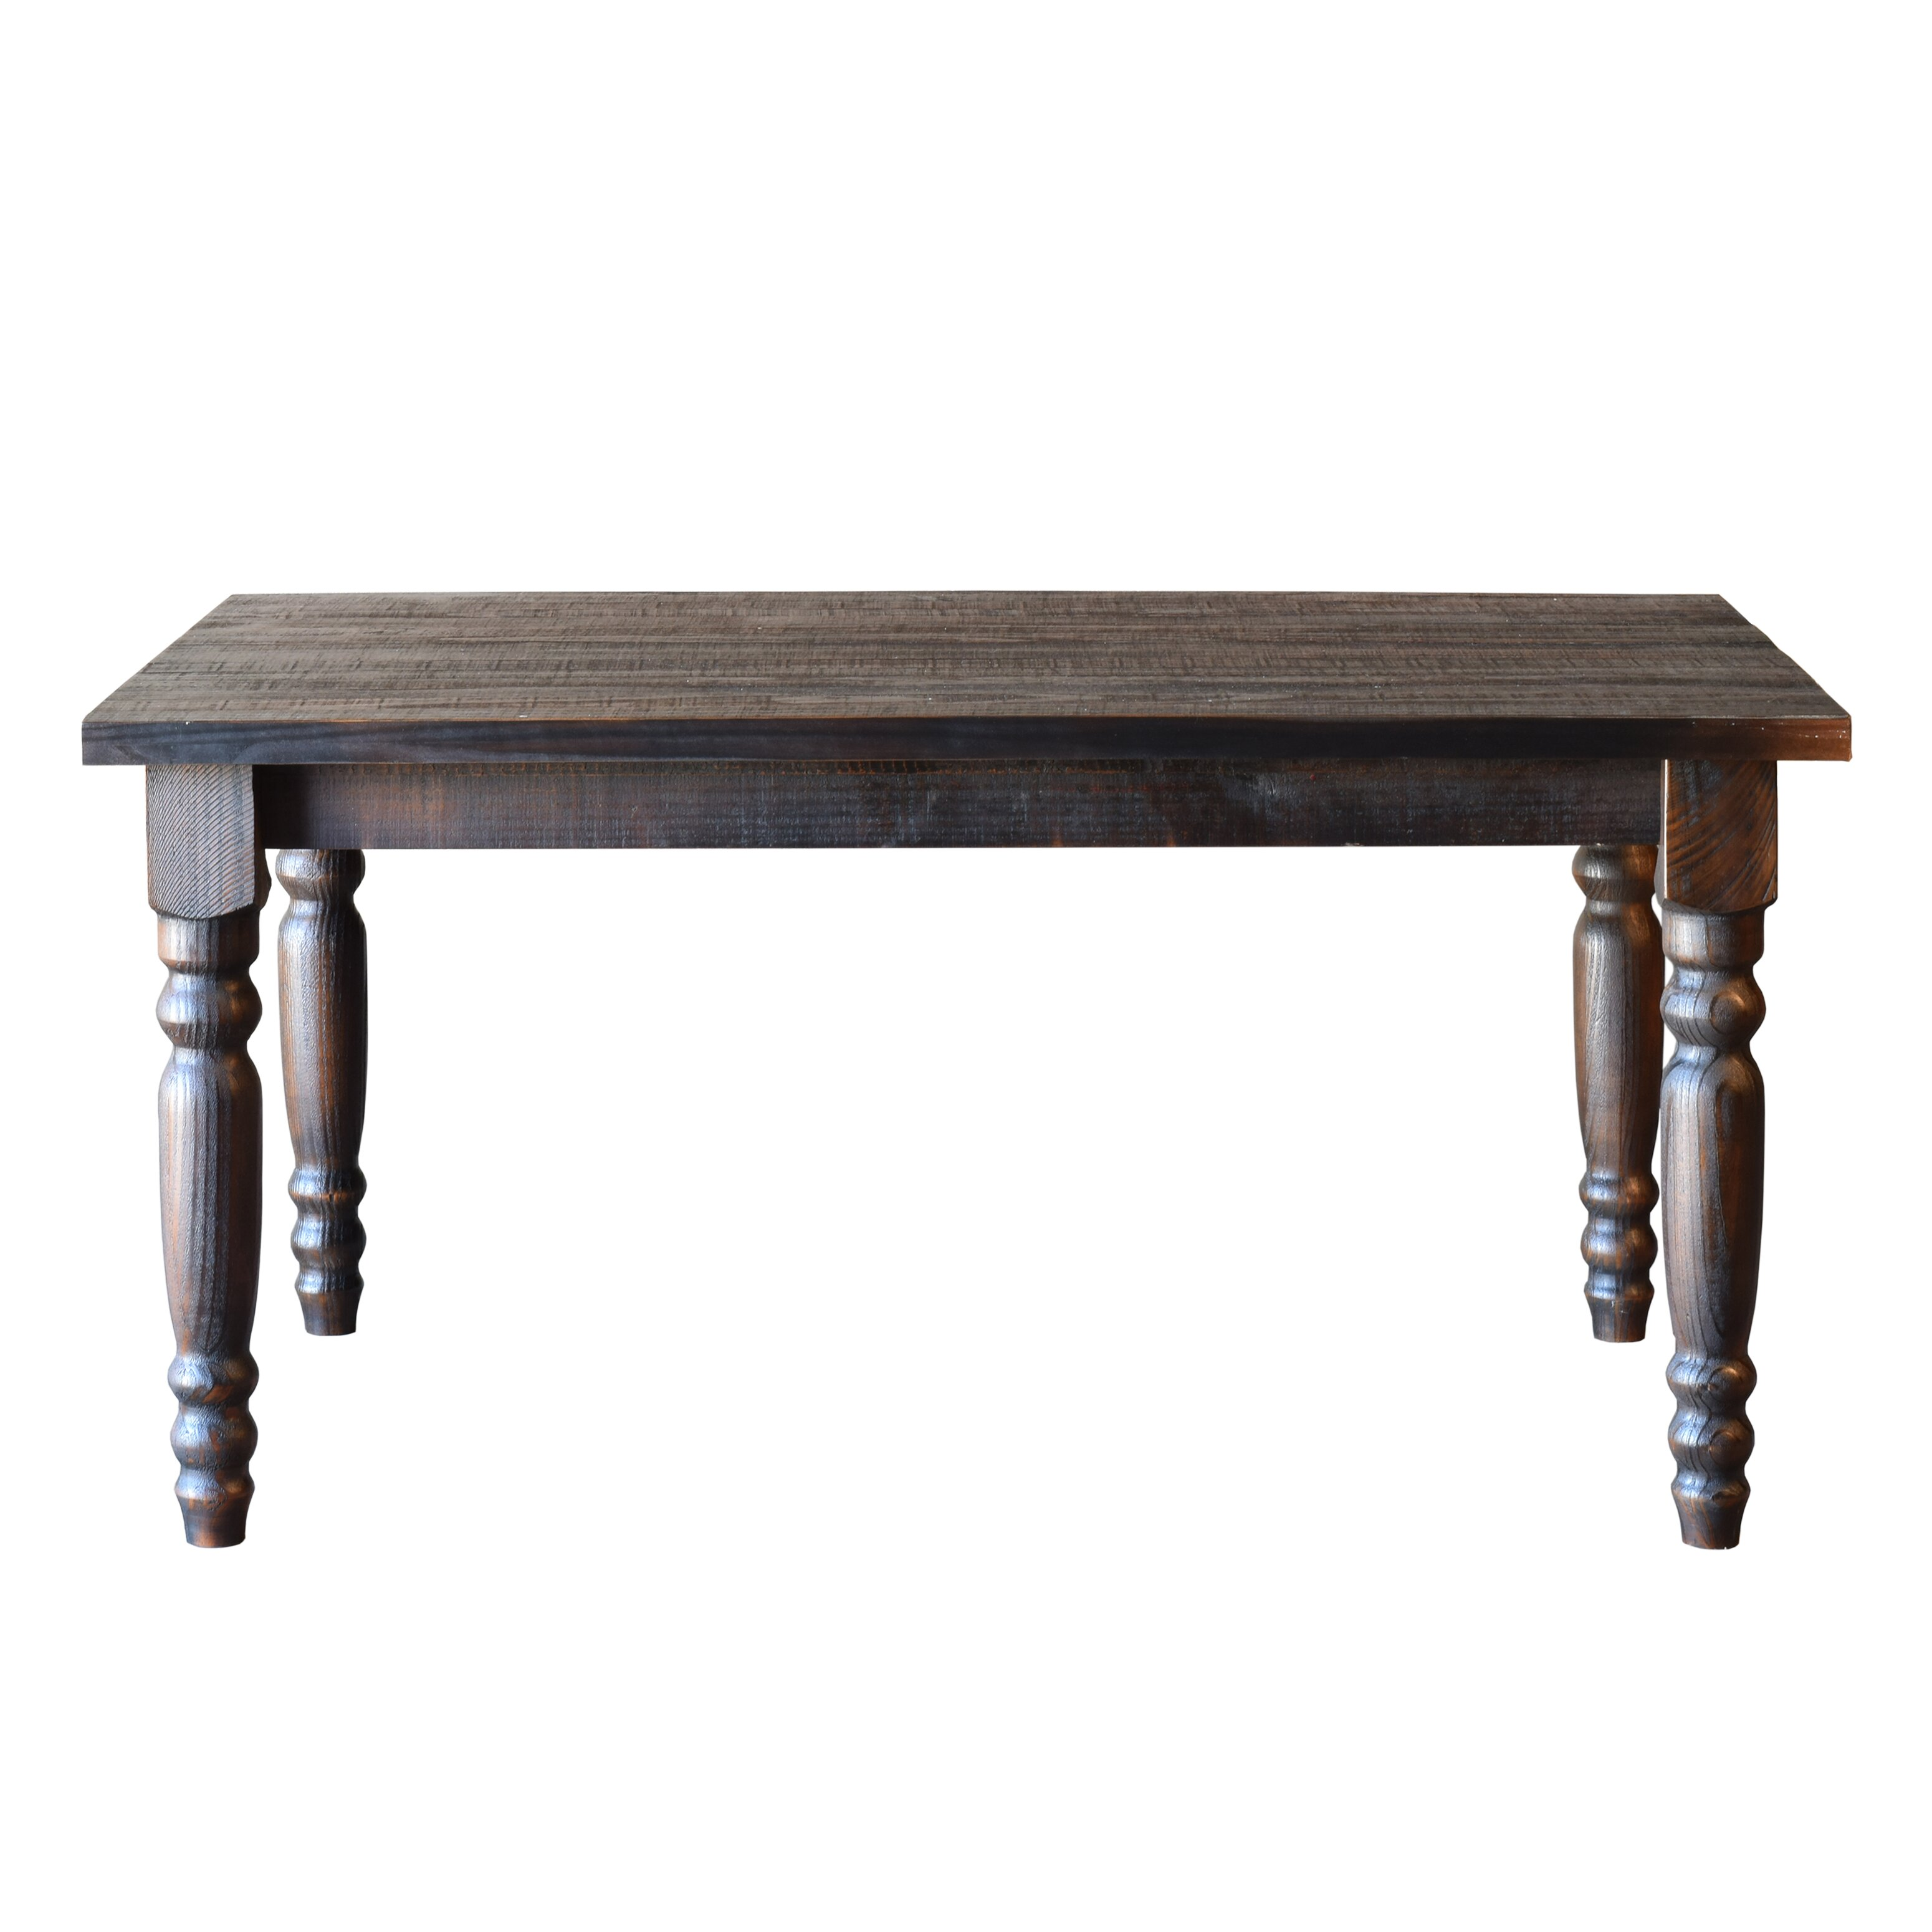 Grain Wood Furniture Valerie Dining Table Reviews Wayfair